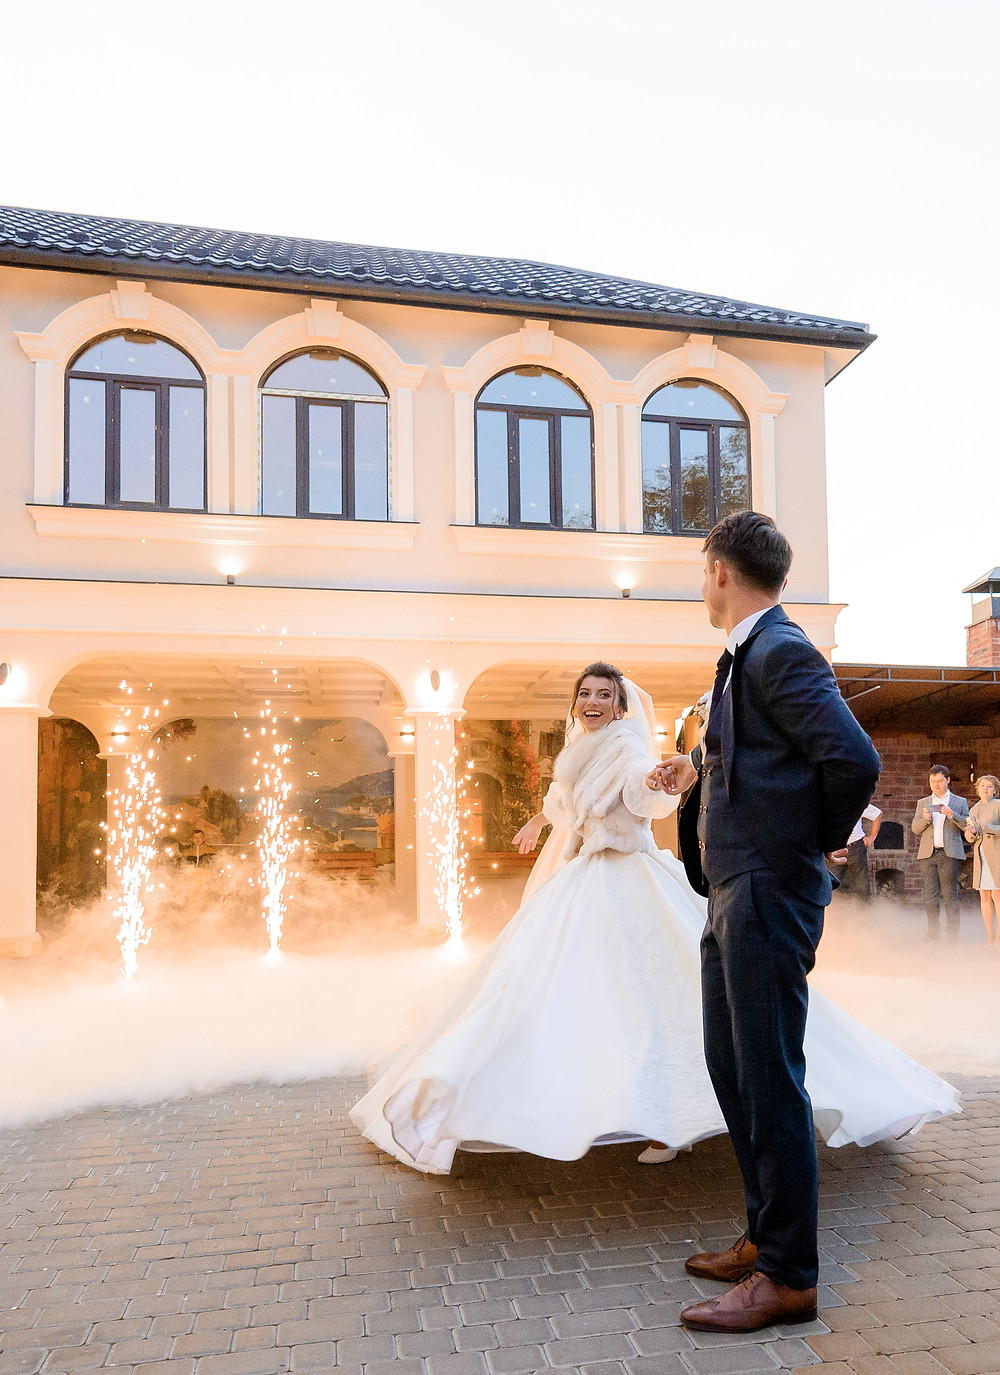 10 Classic Wedding Songs for The Bride and Groom First Dance on the Unmeasured Events Blog